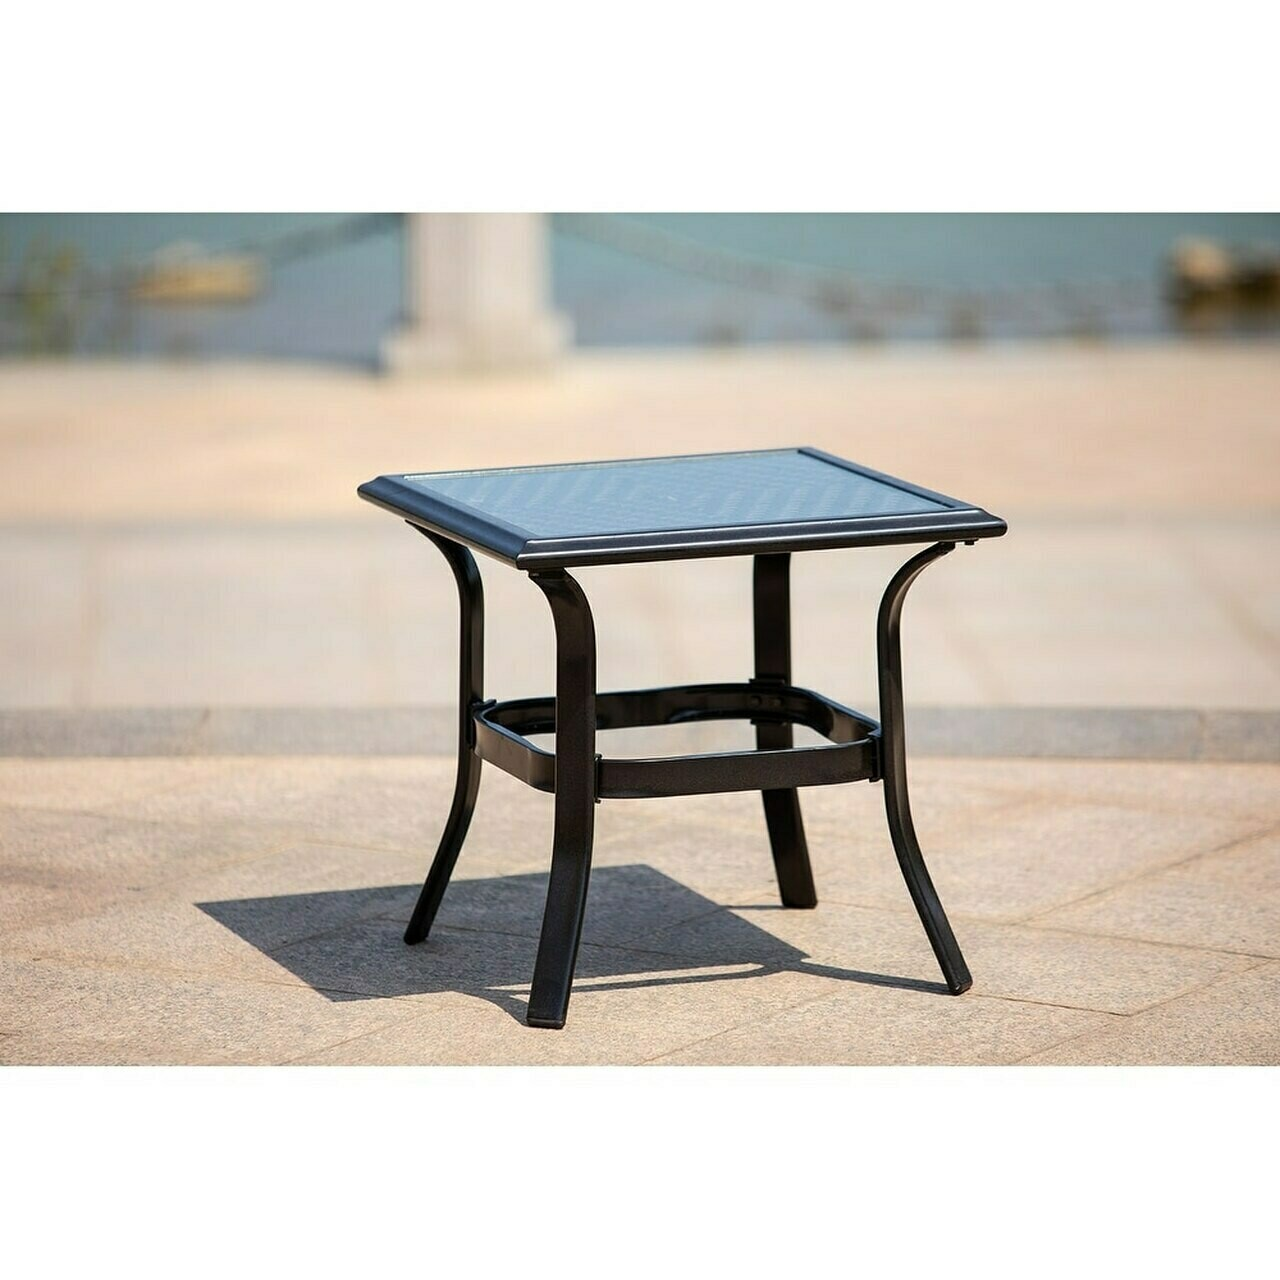 Patio  Side Table, Perfect for Balcony, Deck